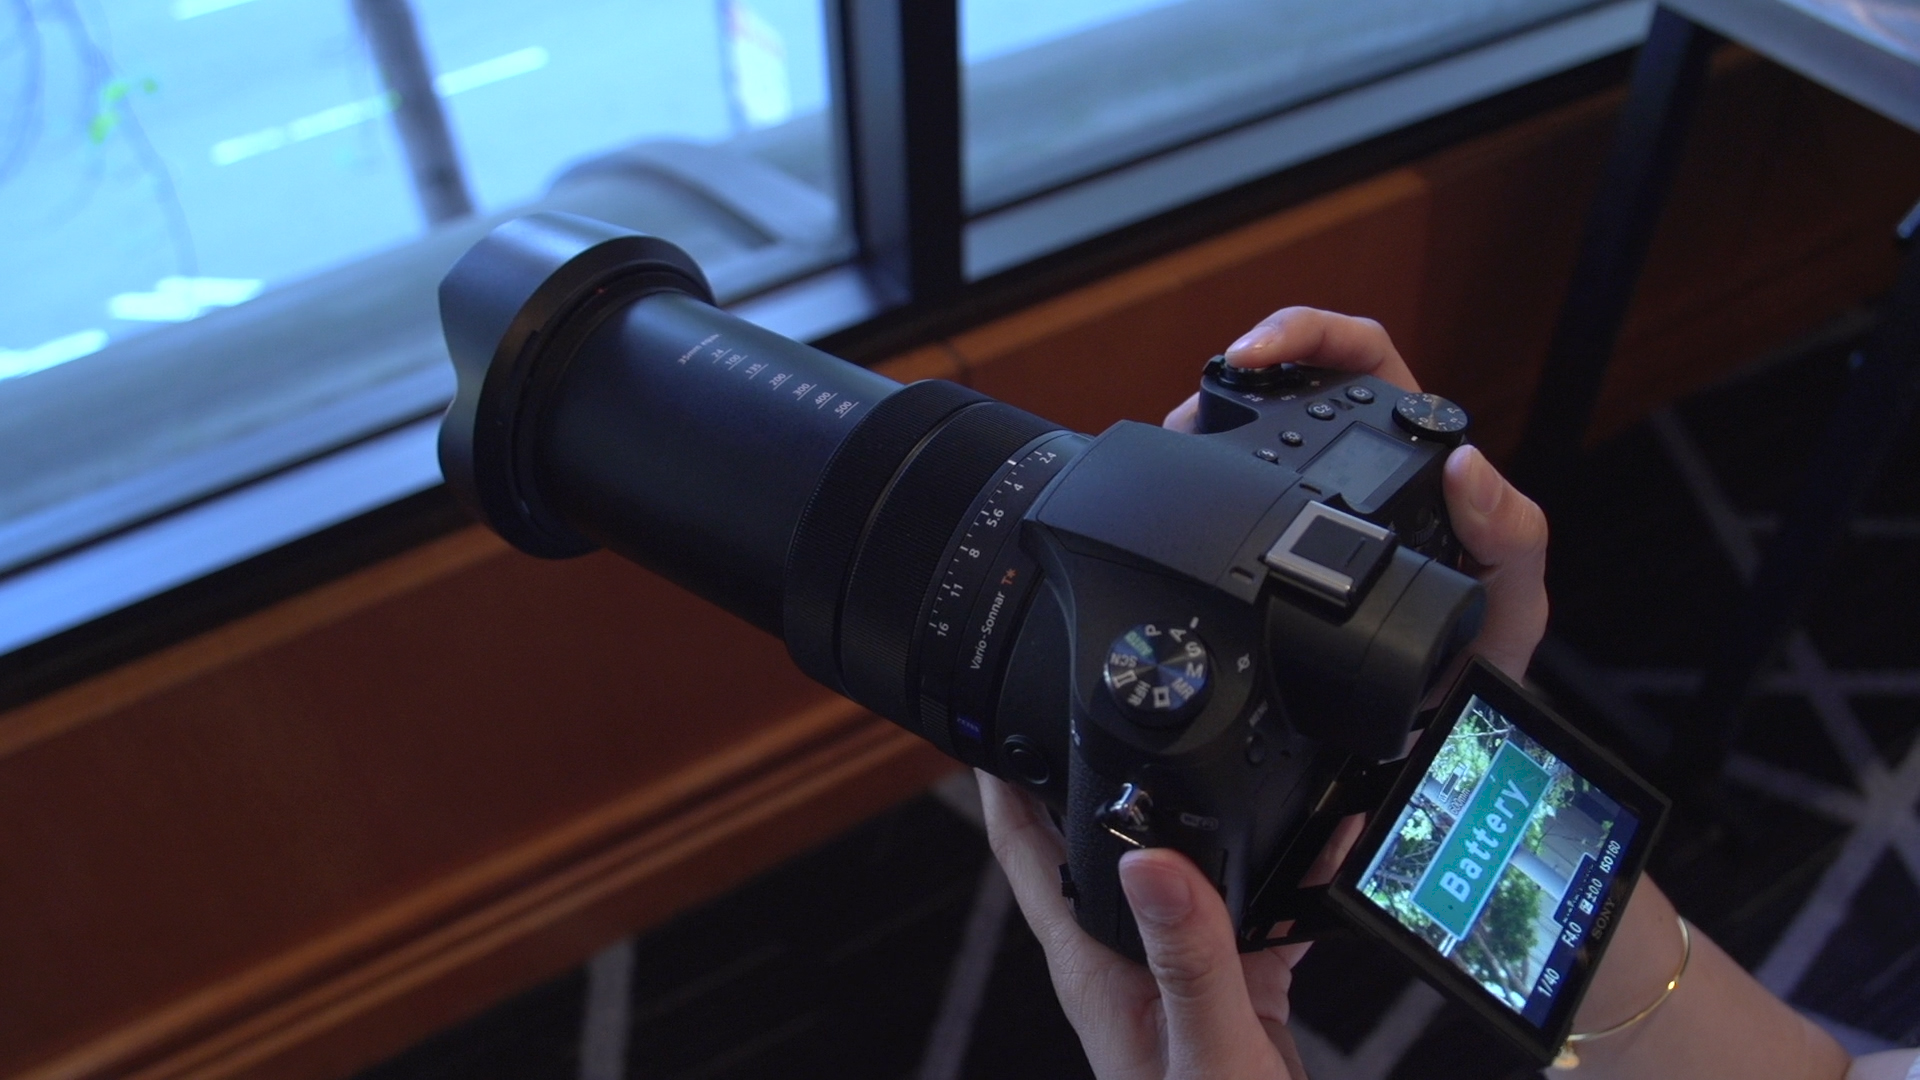 Video: Sony's Cyber-shot RX10 III ups the zoom-lens ante for 1-inch sensor compacts